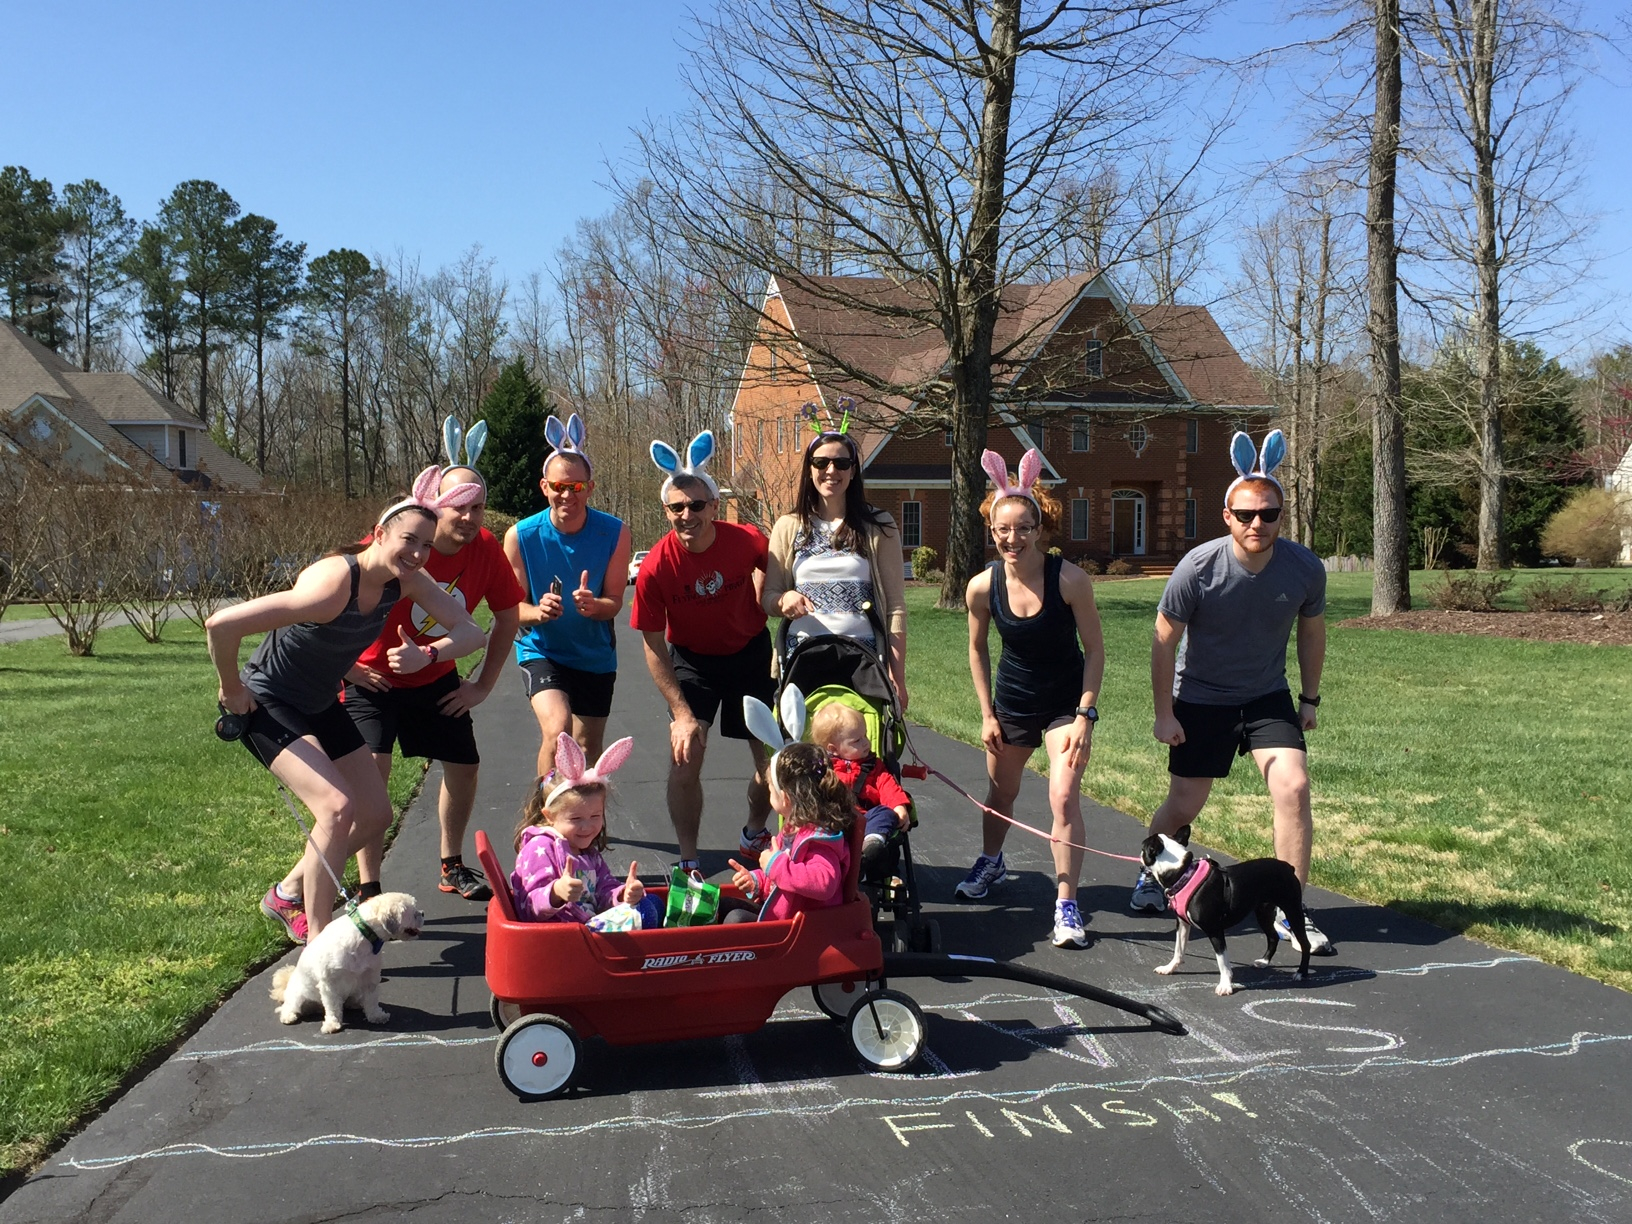 The start of the Buggy Bunny Hop 5K